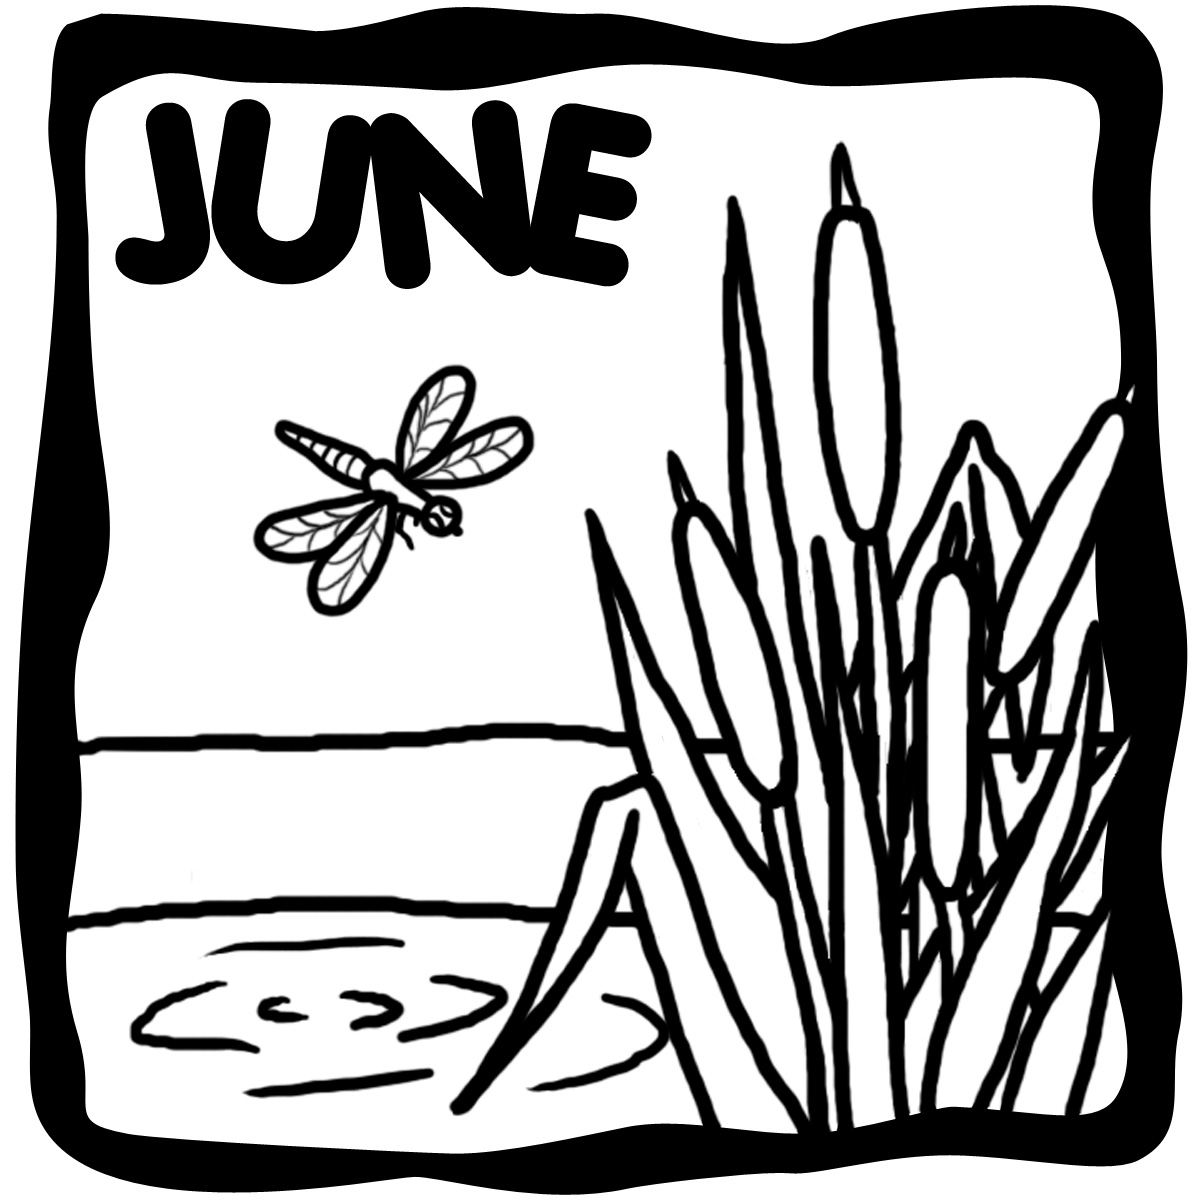 Clip June art black and white pictures